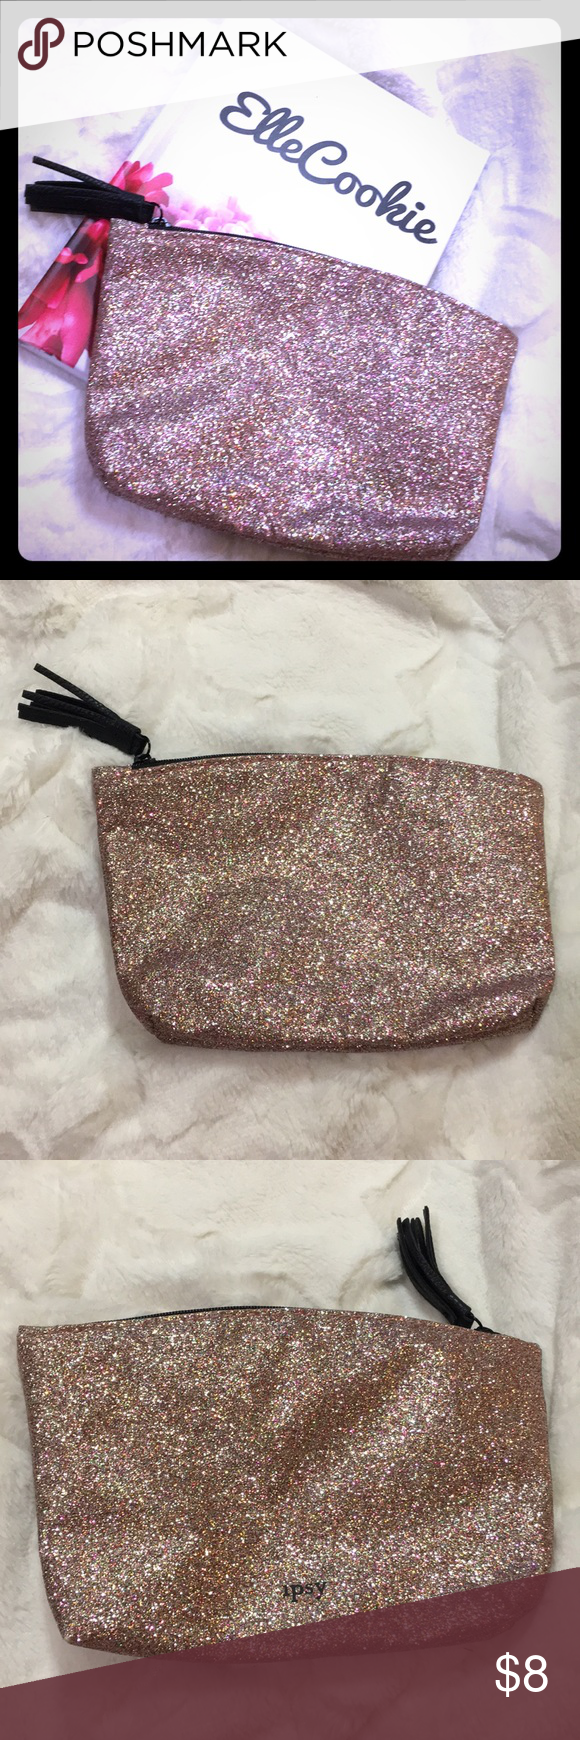 IPSY Pink Glittery Makeup Bag NWT (With images) Makeup